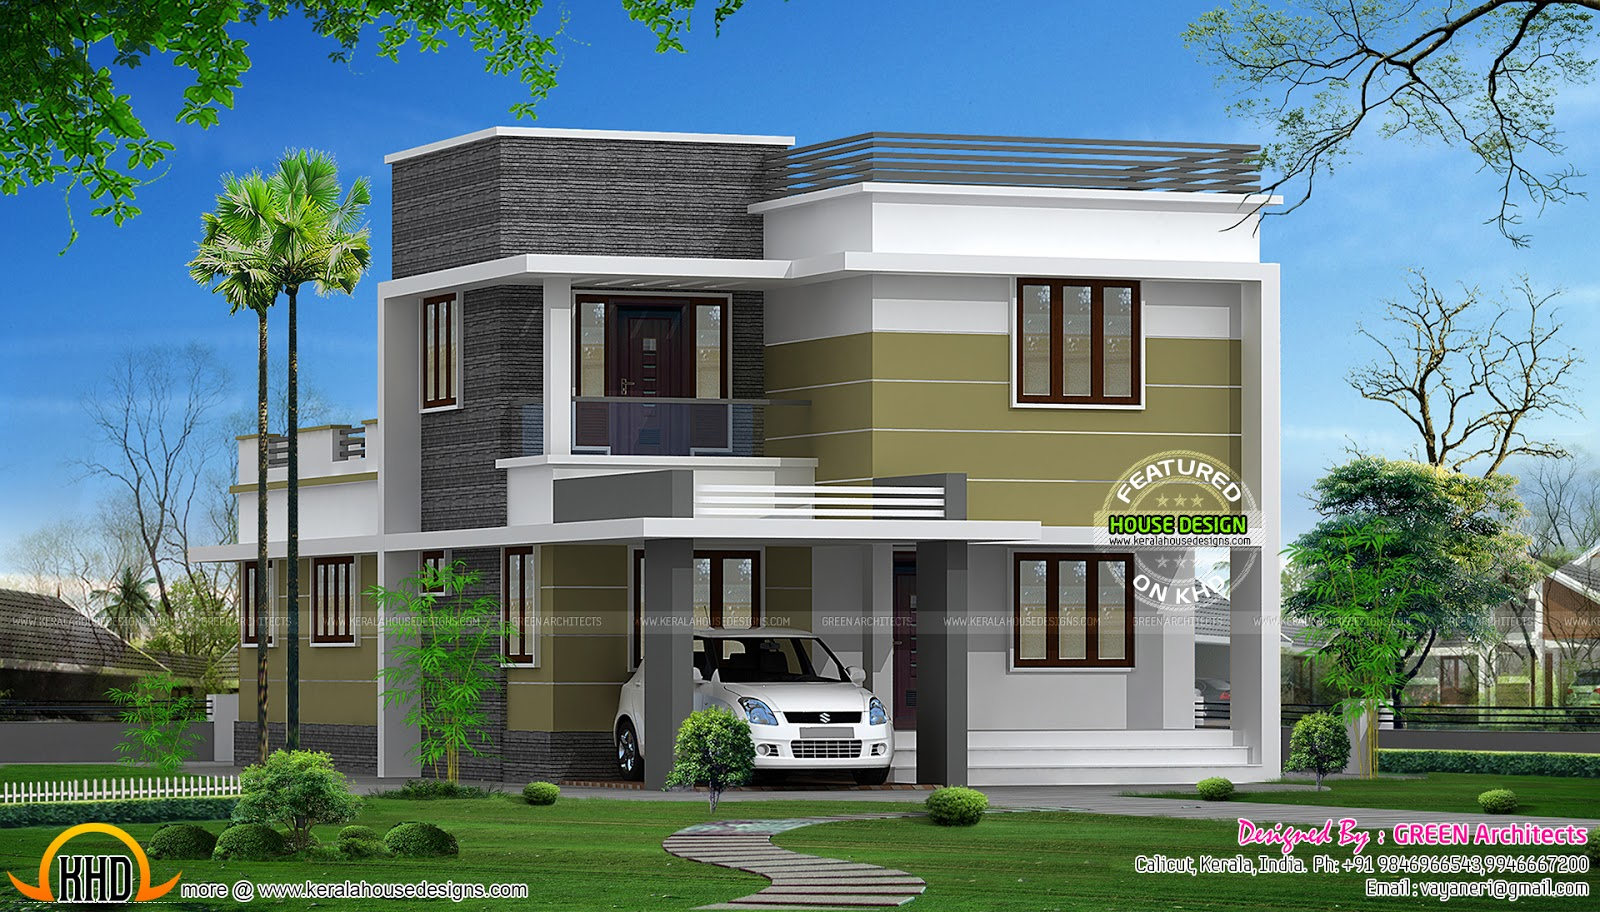 186 sq m small double storied house in kerala kerala for Latest beautiful houses